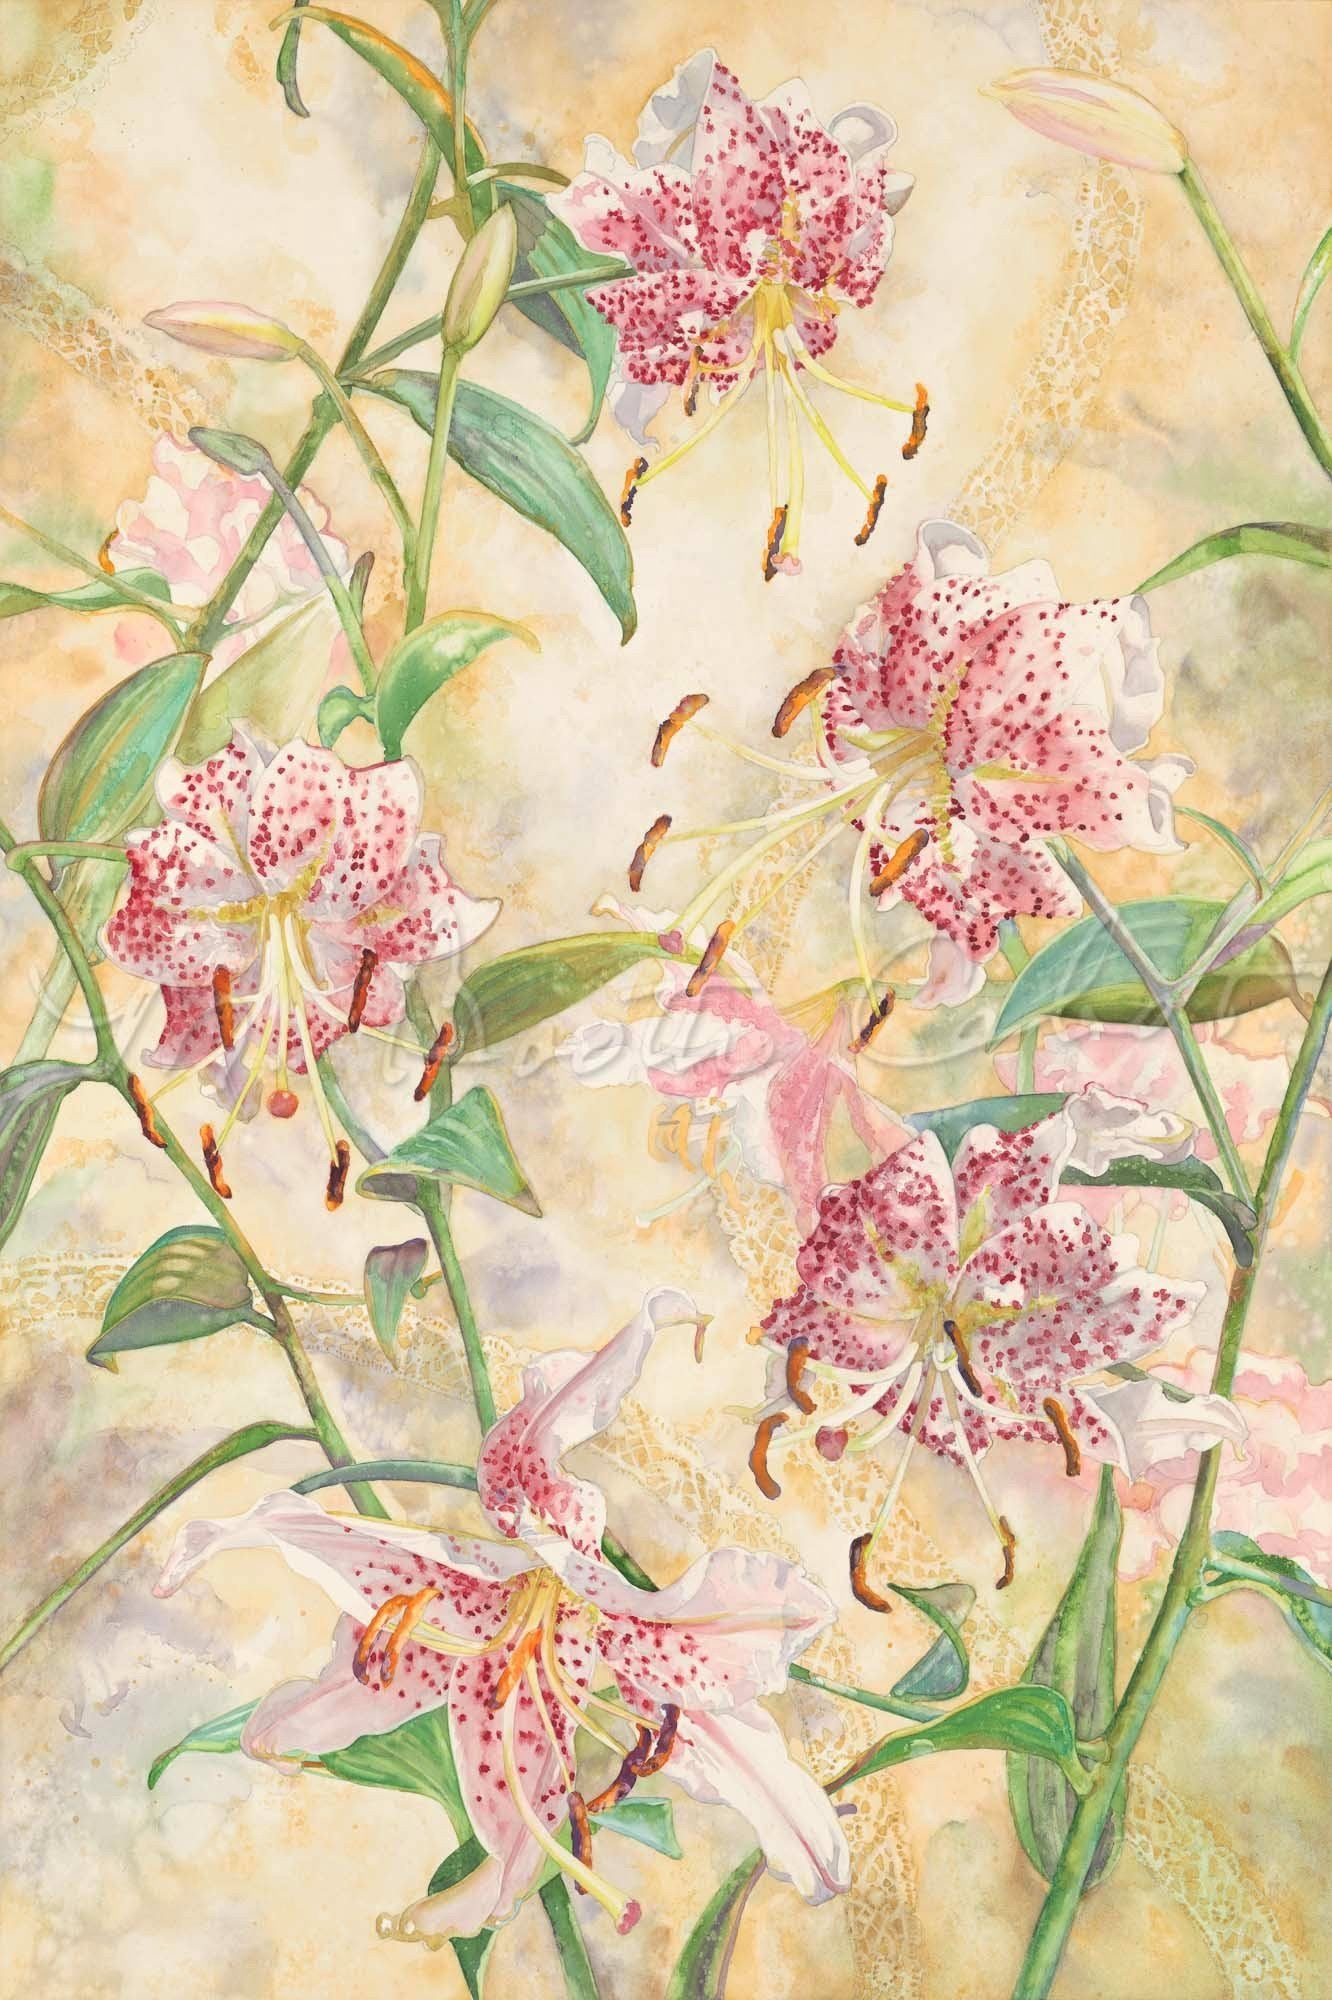 Lily - Stargazer Lilies and Lace - Watercolor